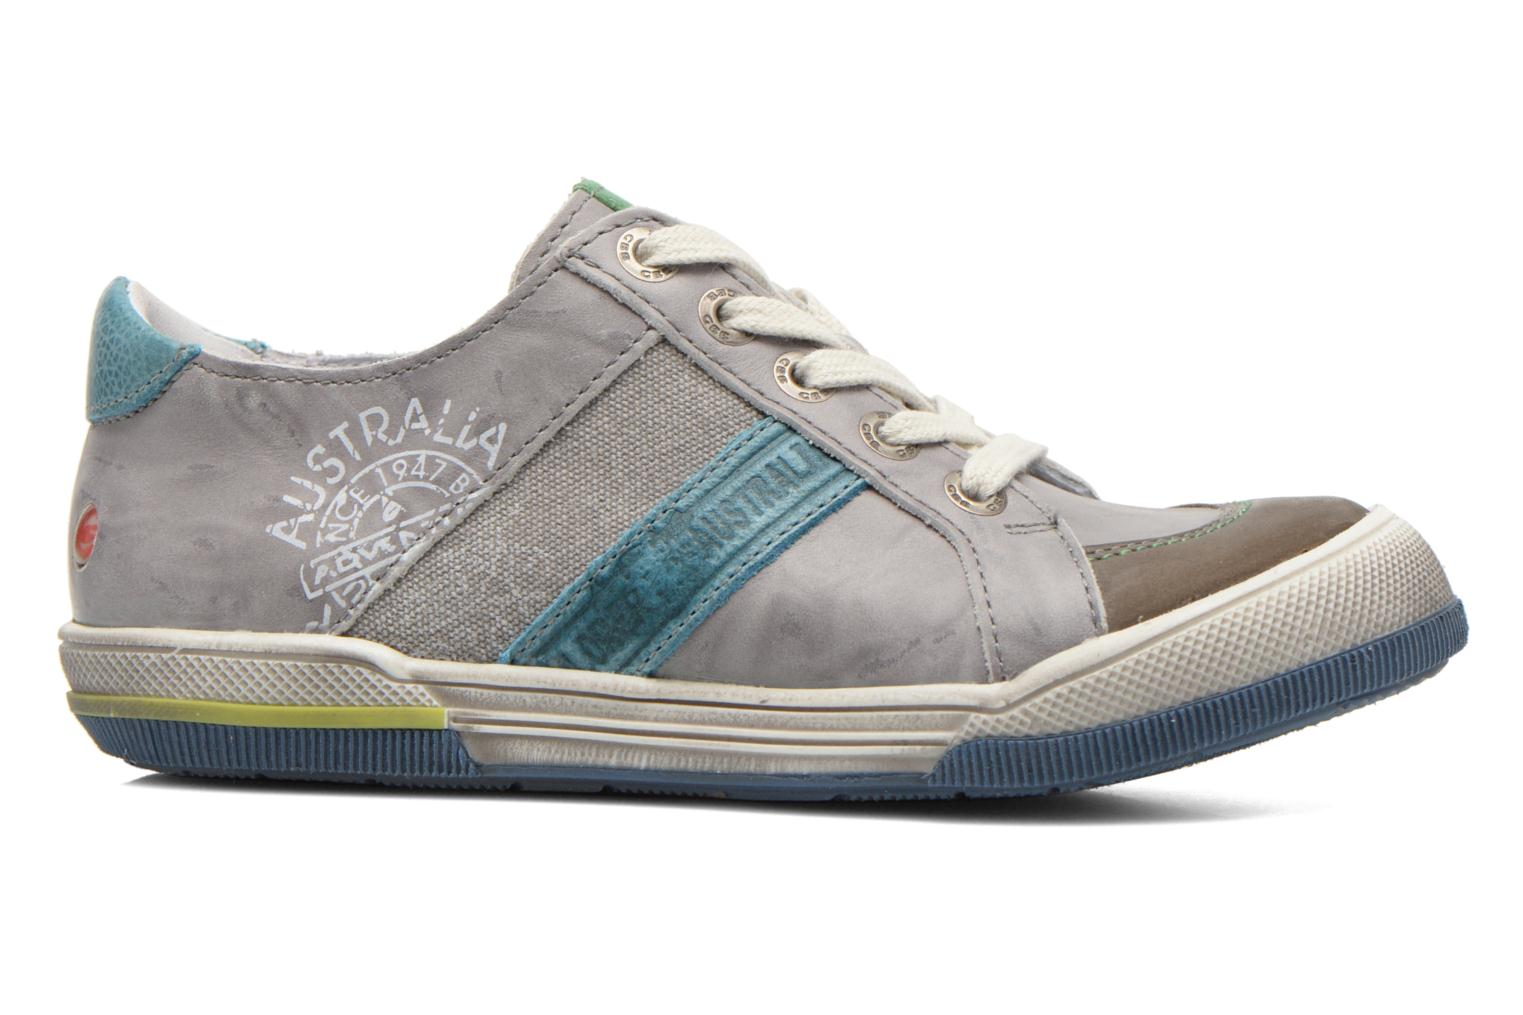 Marc Vte Gris-Turquoise